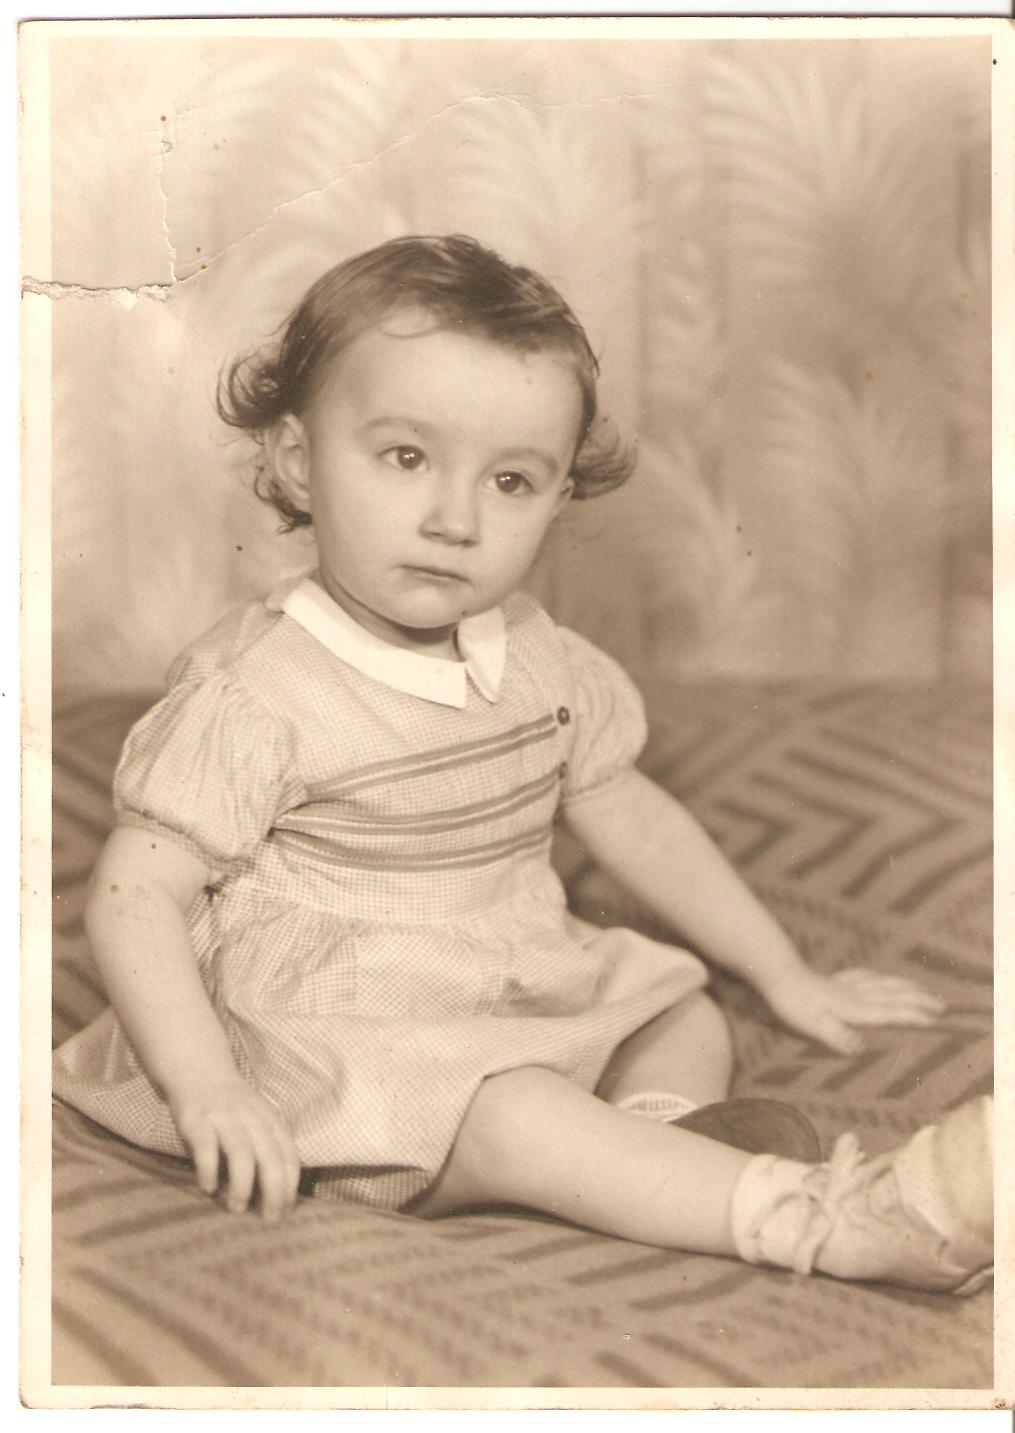 Rose as a baby.